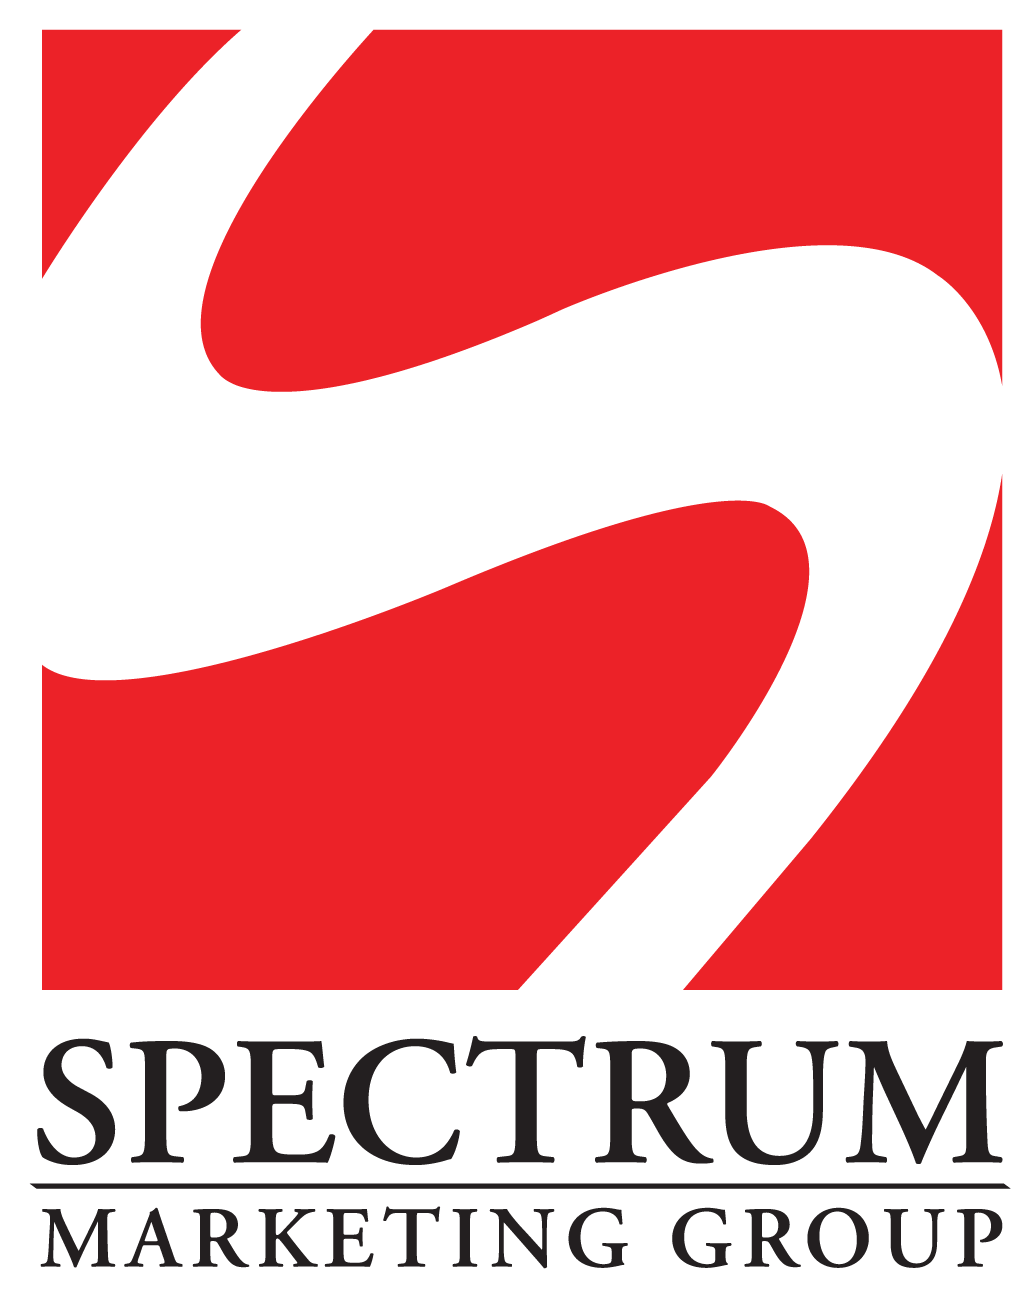 Spectrum Marketing Group About Us